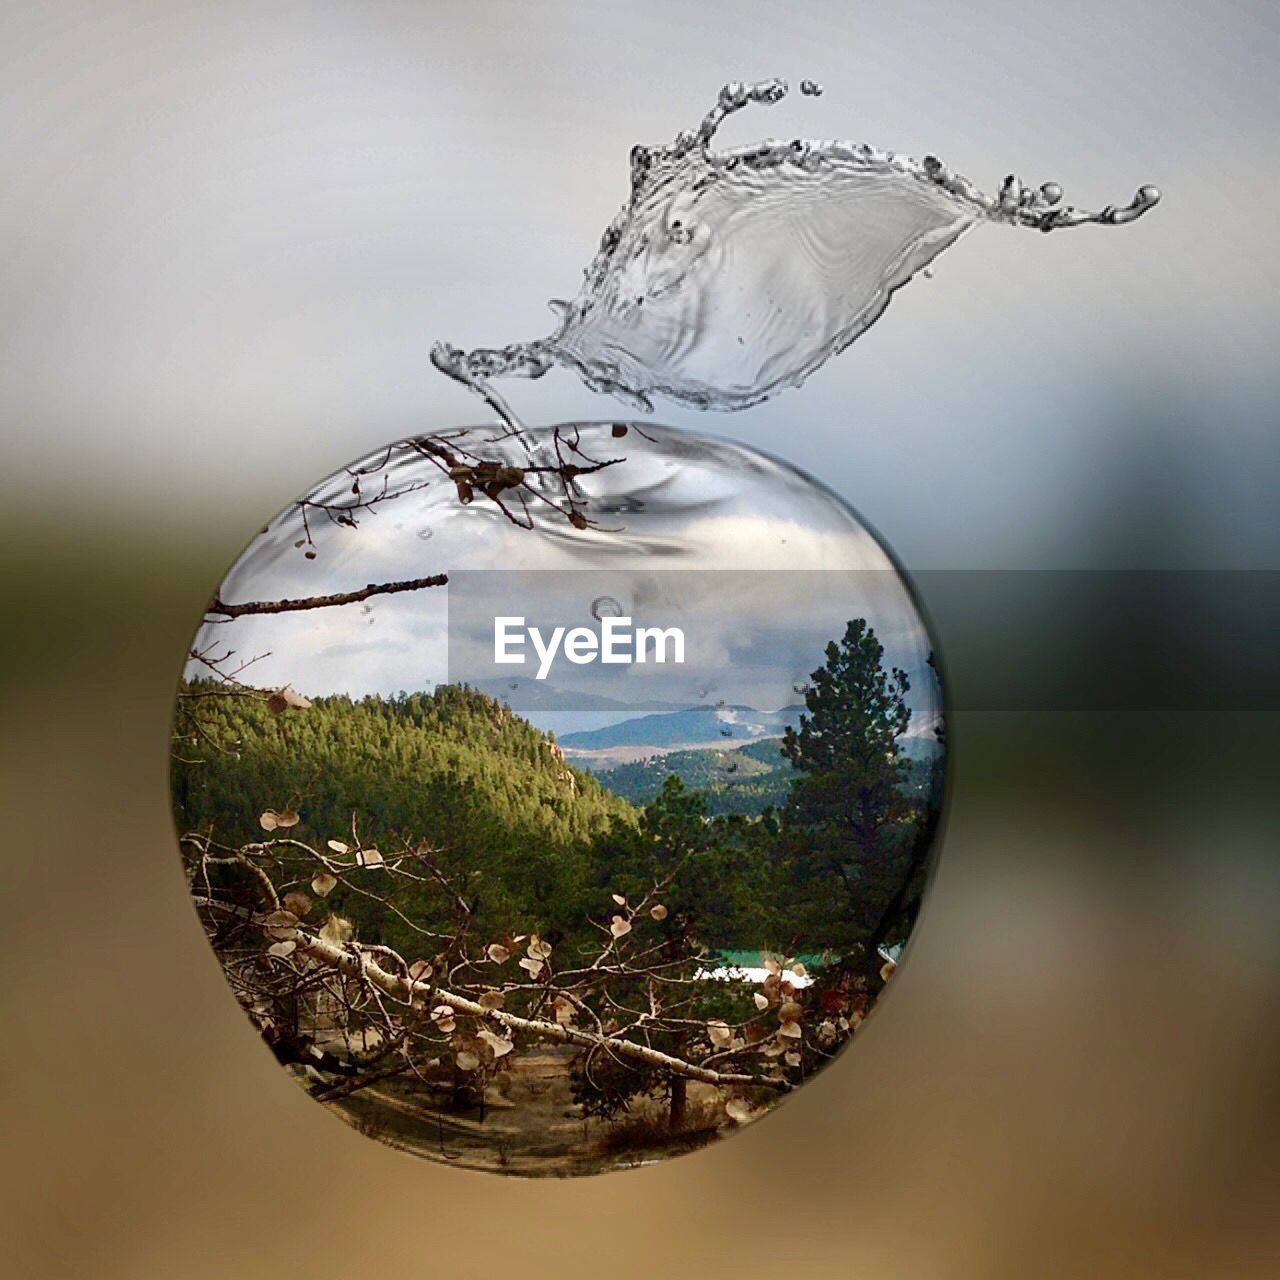 focus on foreground, close-up, transparent, no people, glass - material, nature, motion, outdoors, day, water, glass, tree, plant, freshness, reflection, sphere, food and drink, splashing, refreshment